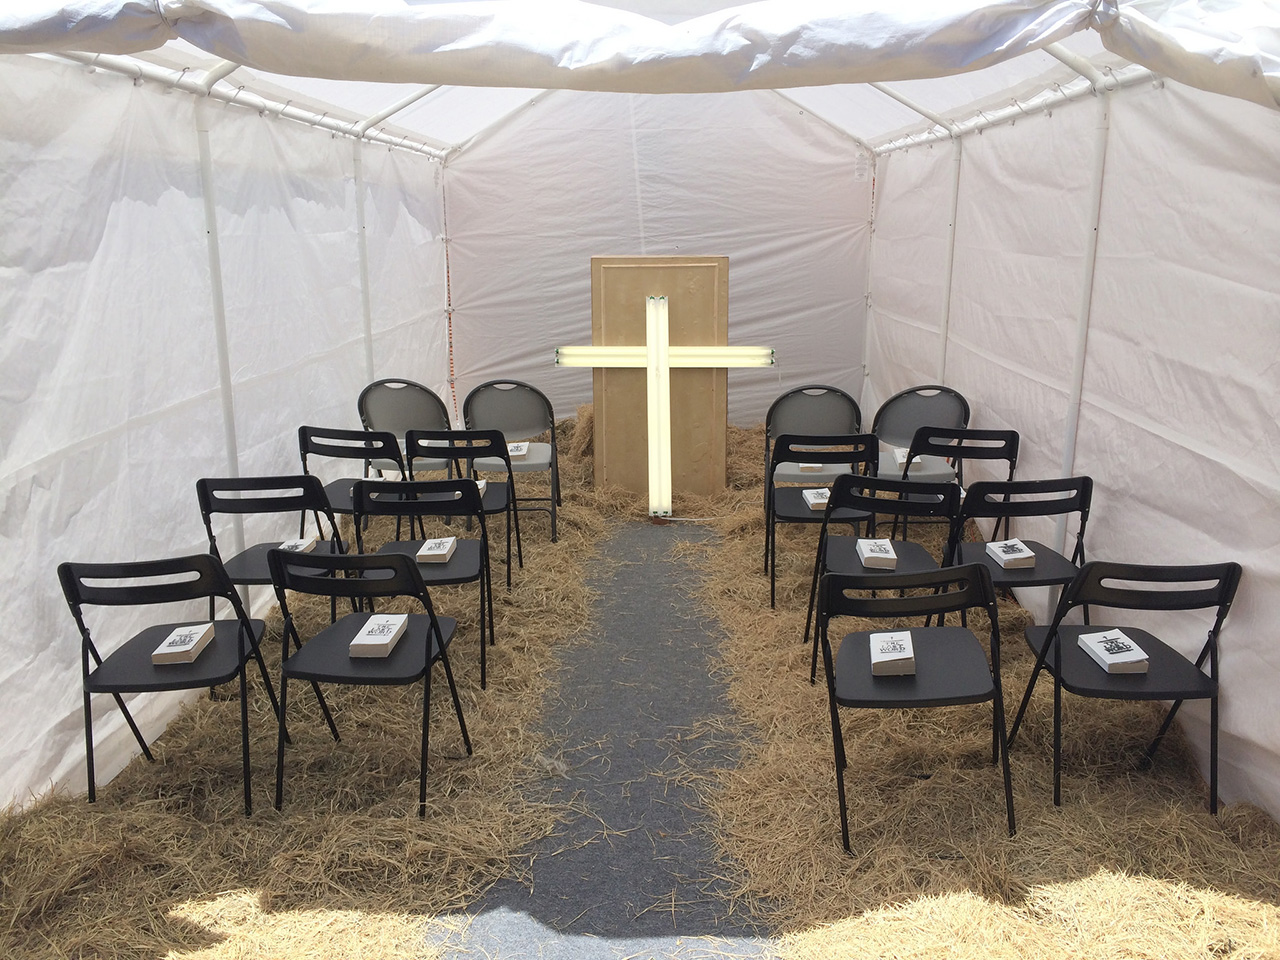 The revival tent at William Powhida and Jade Townsend's New New Berlin (all photos by the author for Hyperallergic)